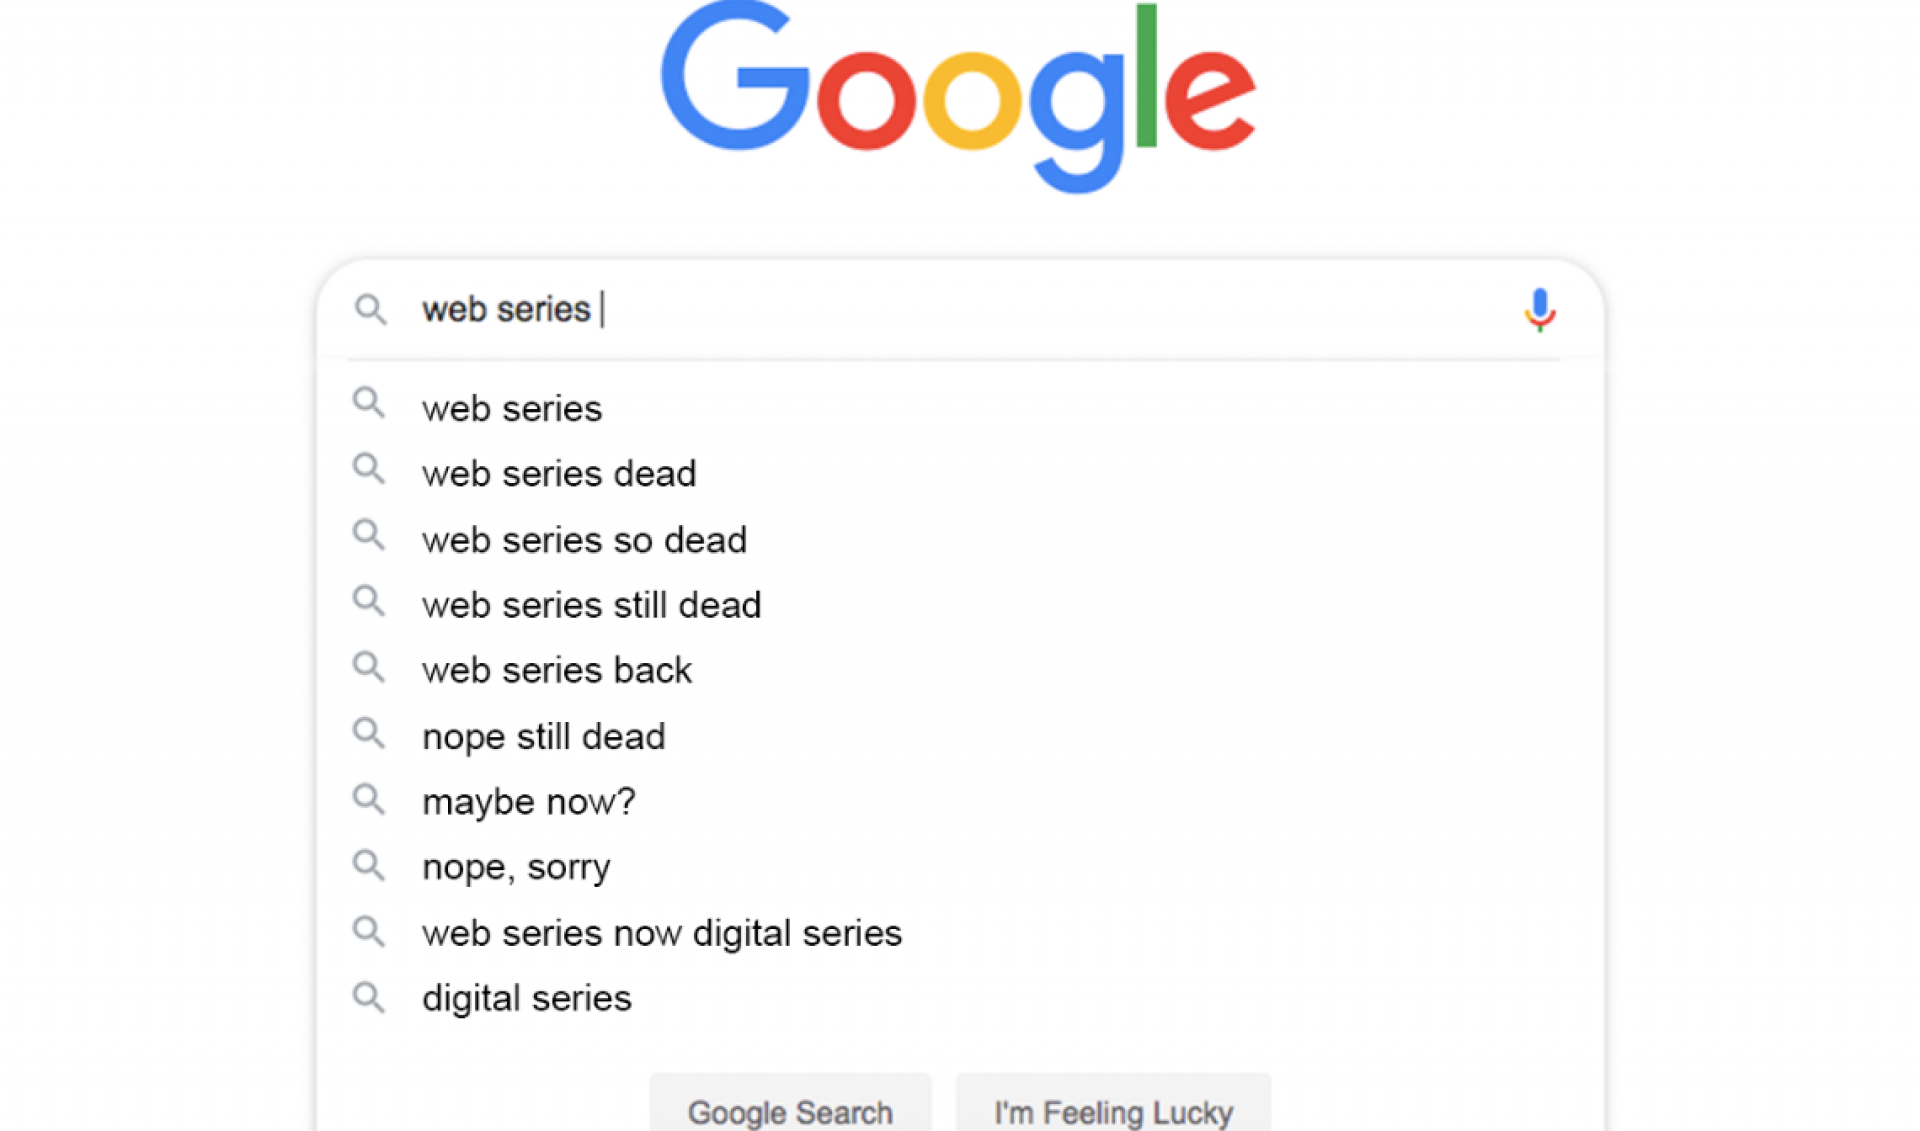 Diary Of A Web Series: Death Of The Web Series (And What Killed It)